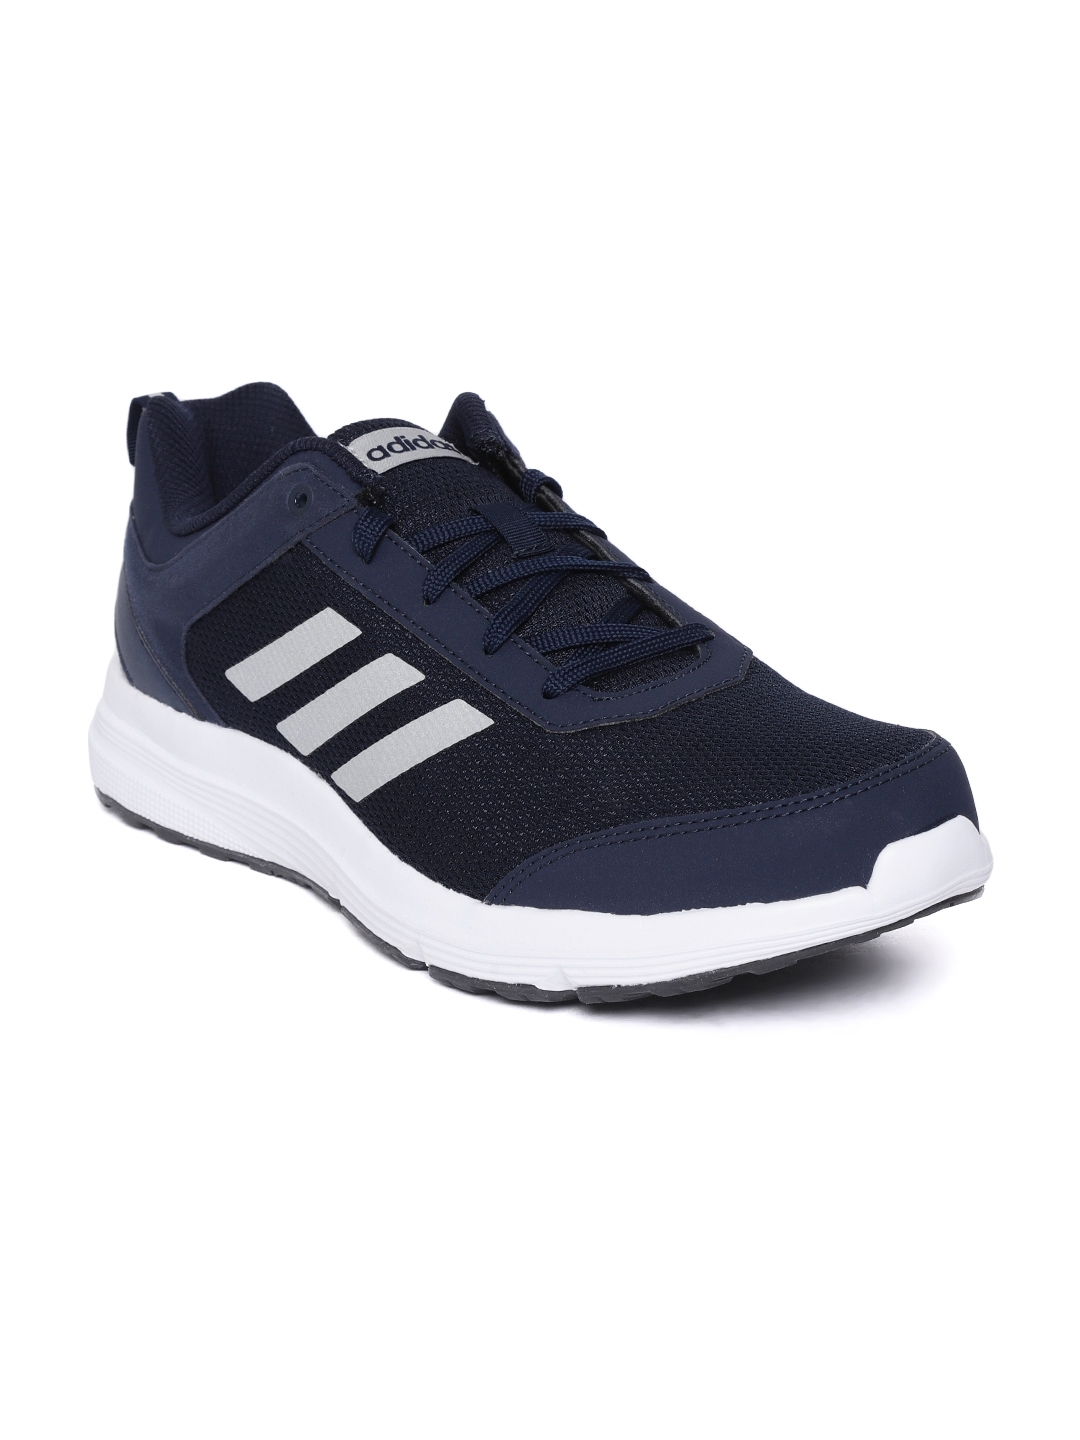 ADIDAS Erdiga 3 Navy Blue Running Shoes